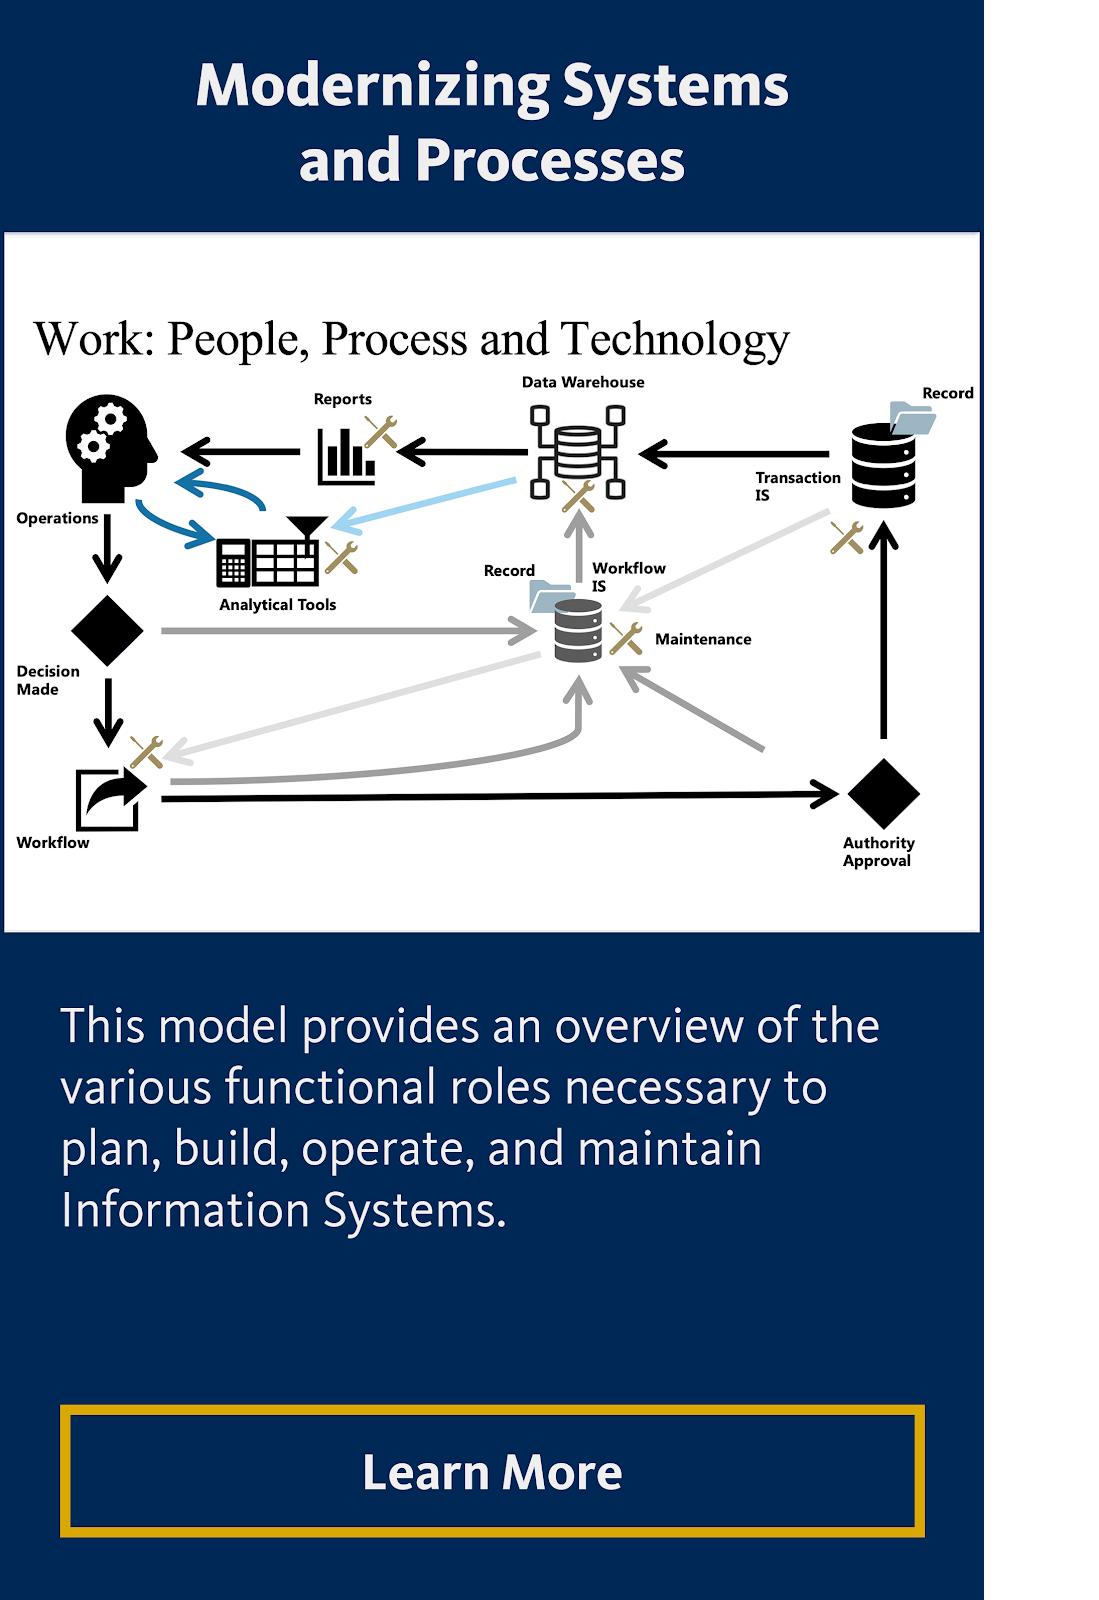 Modernizing Systems and Processes